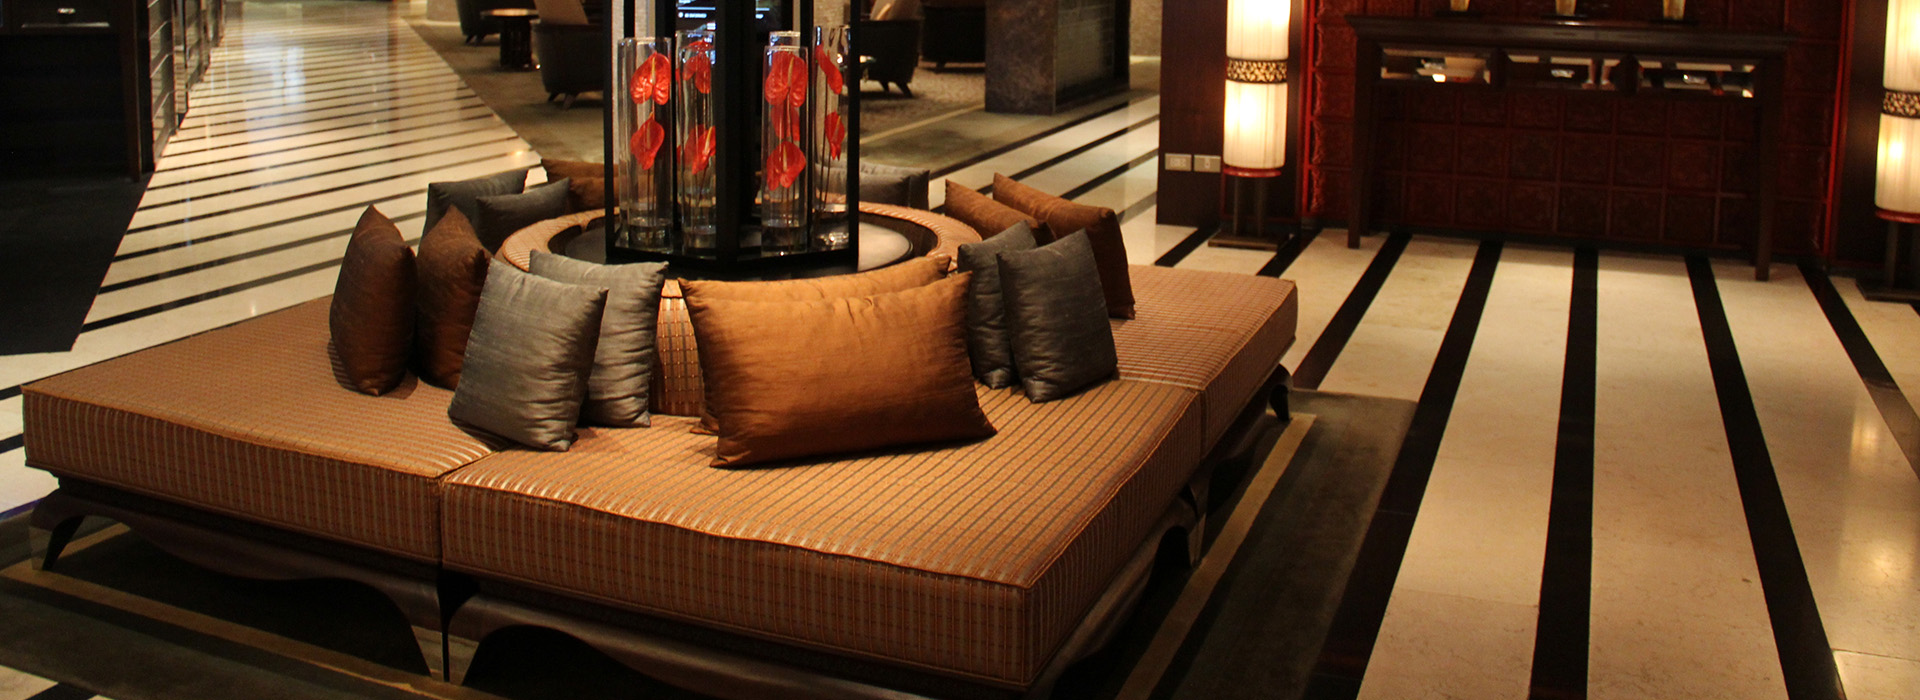 Furniture-Lab-Las-Vegas-Upholstery-0006